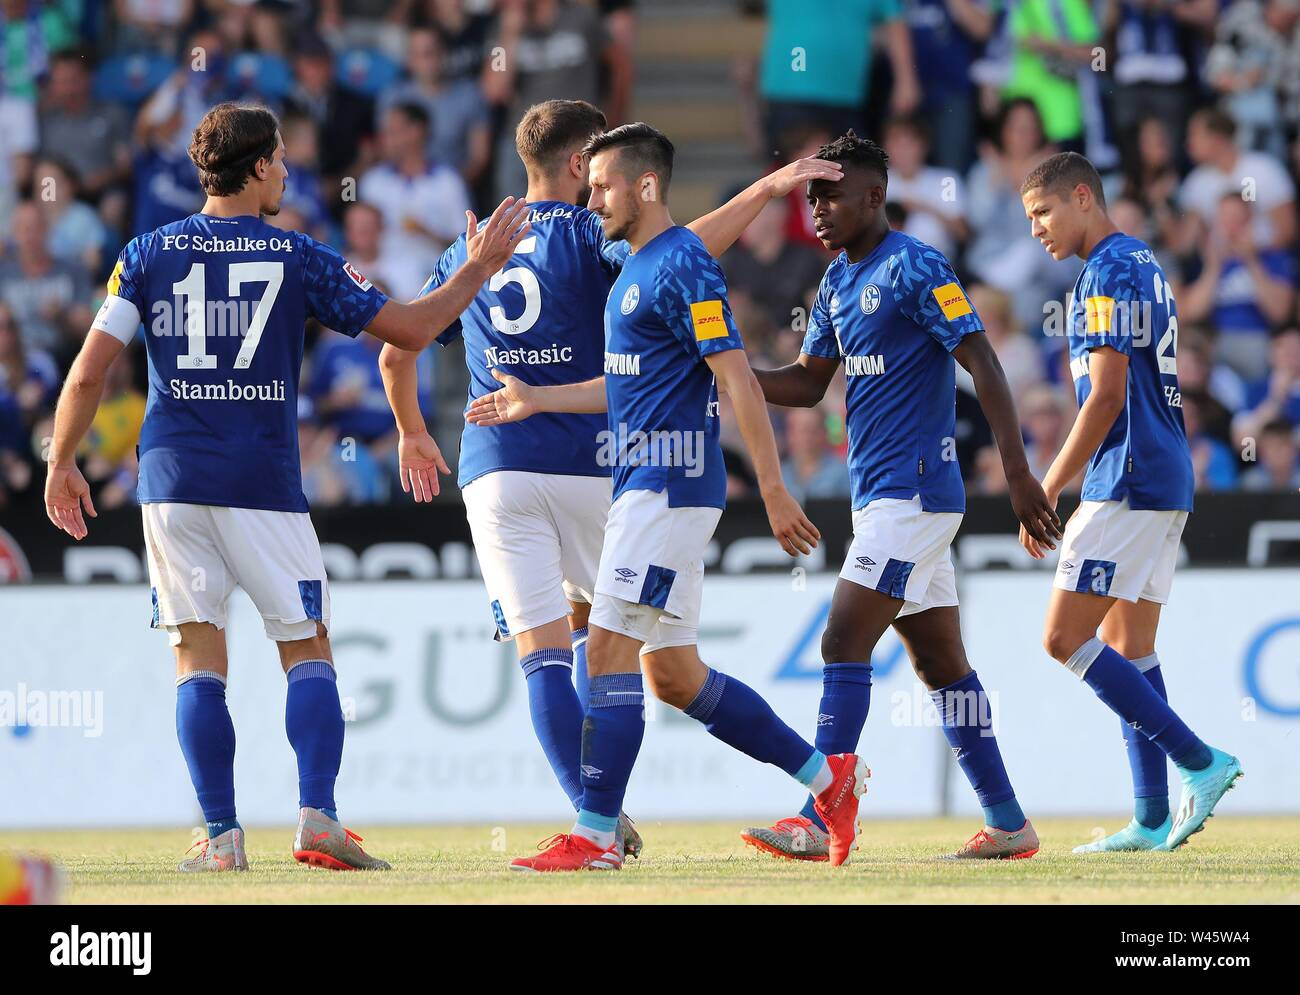 Lotte, Deutschland. 19th July, 2019. firo: 19.07.2019, football, 1.Bundesliga, season 2019/2020, friendly match, FC Schalke 04 - Norwich City jubilation Schalke around MATONDO, with STAMBOULI, SKRZYBSKI | usage worldwide Credit: dpa/Alamy Live News - Stock Image